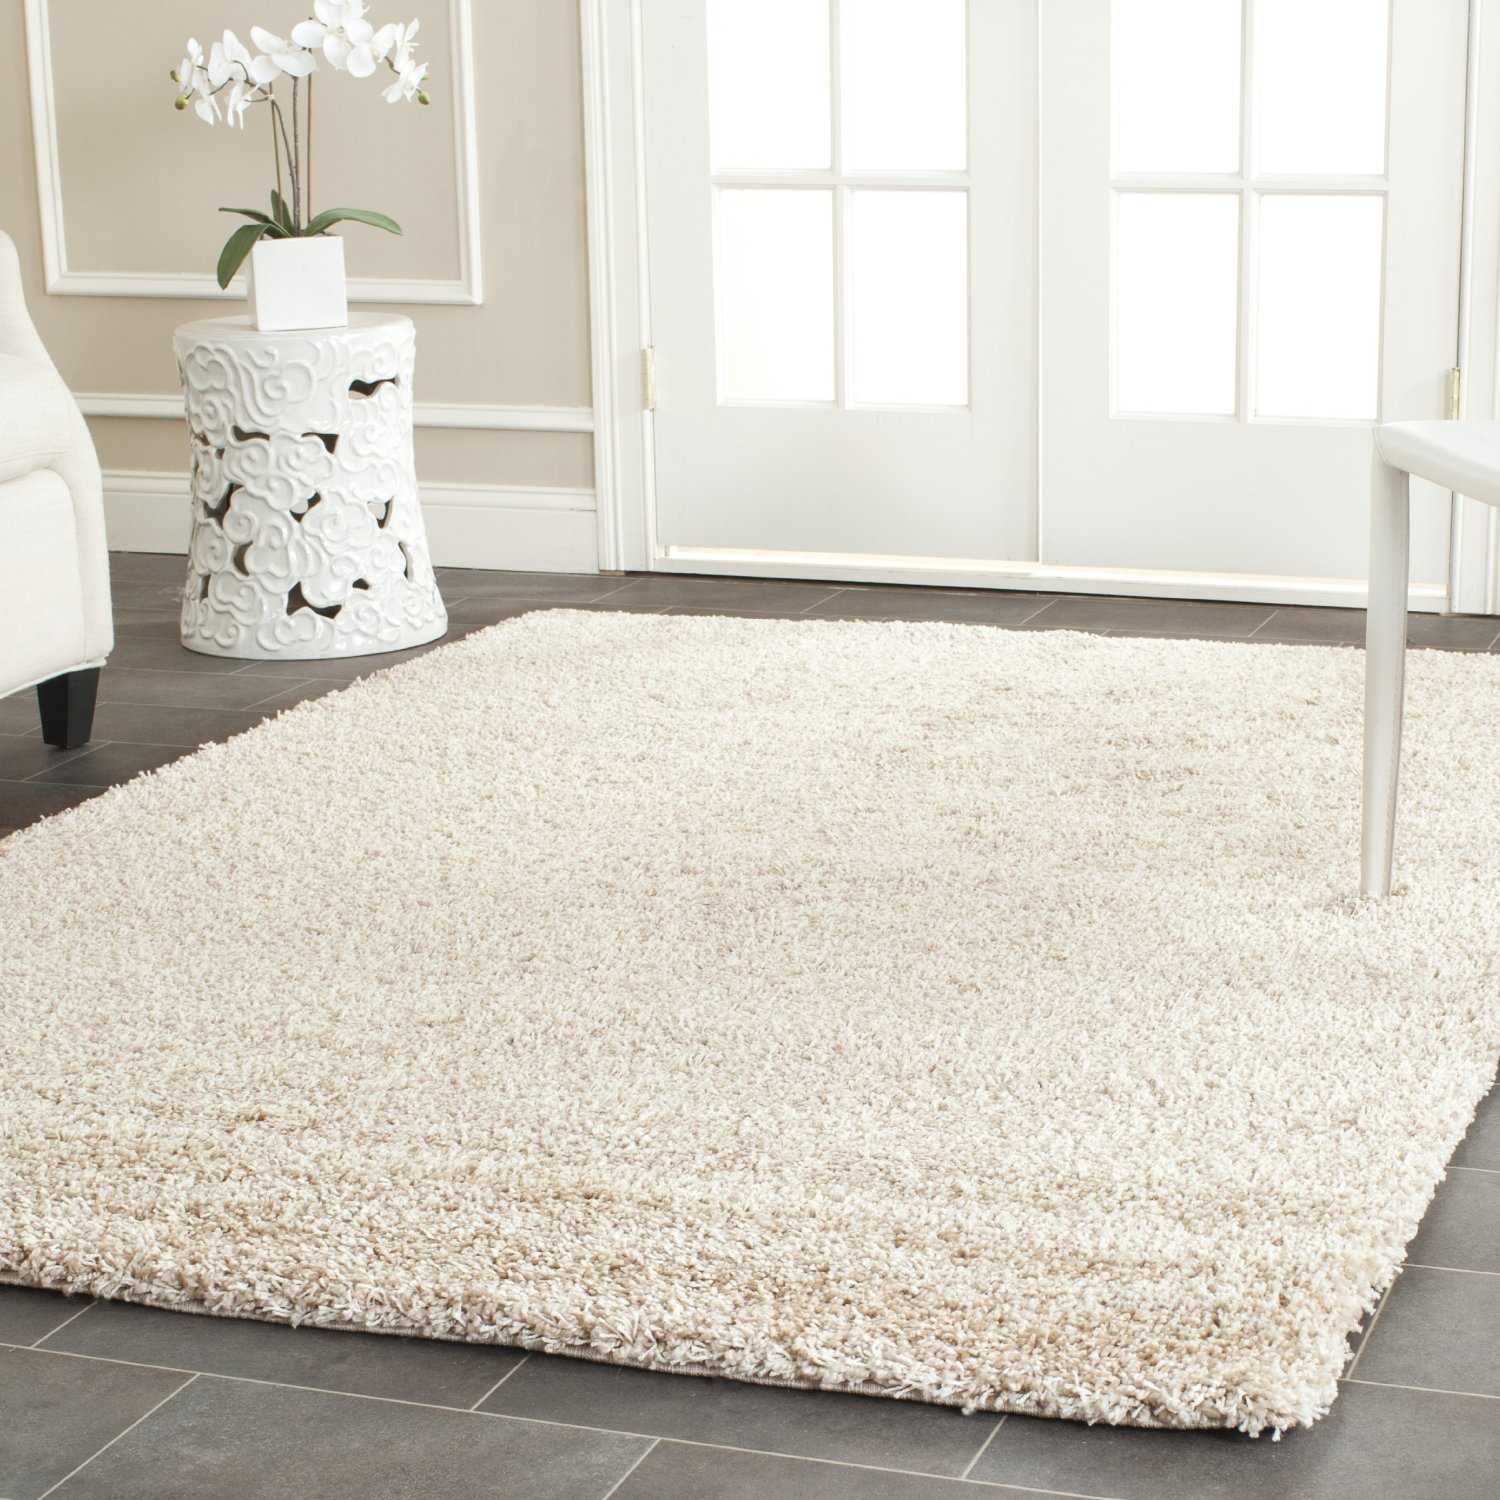 Chic white fur rug with Best wooden laminate flooring and sofa chairs for living room Ideas